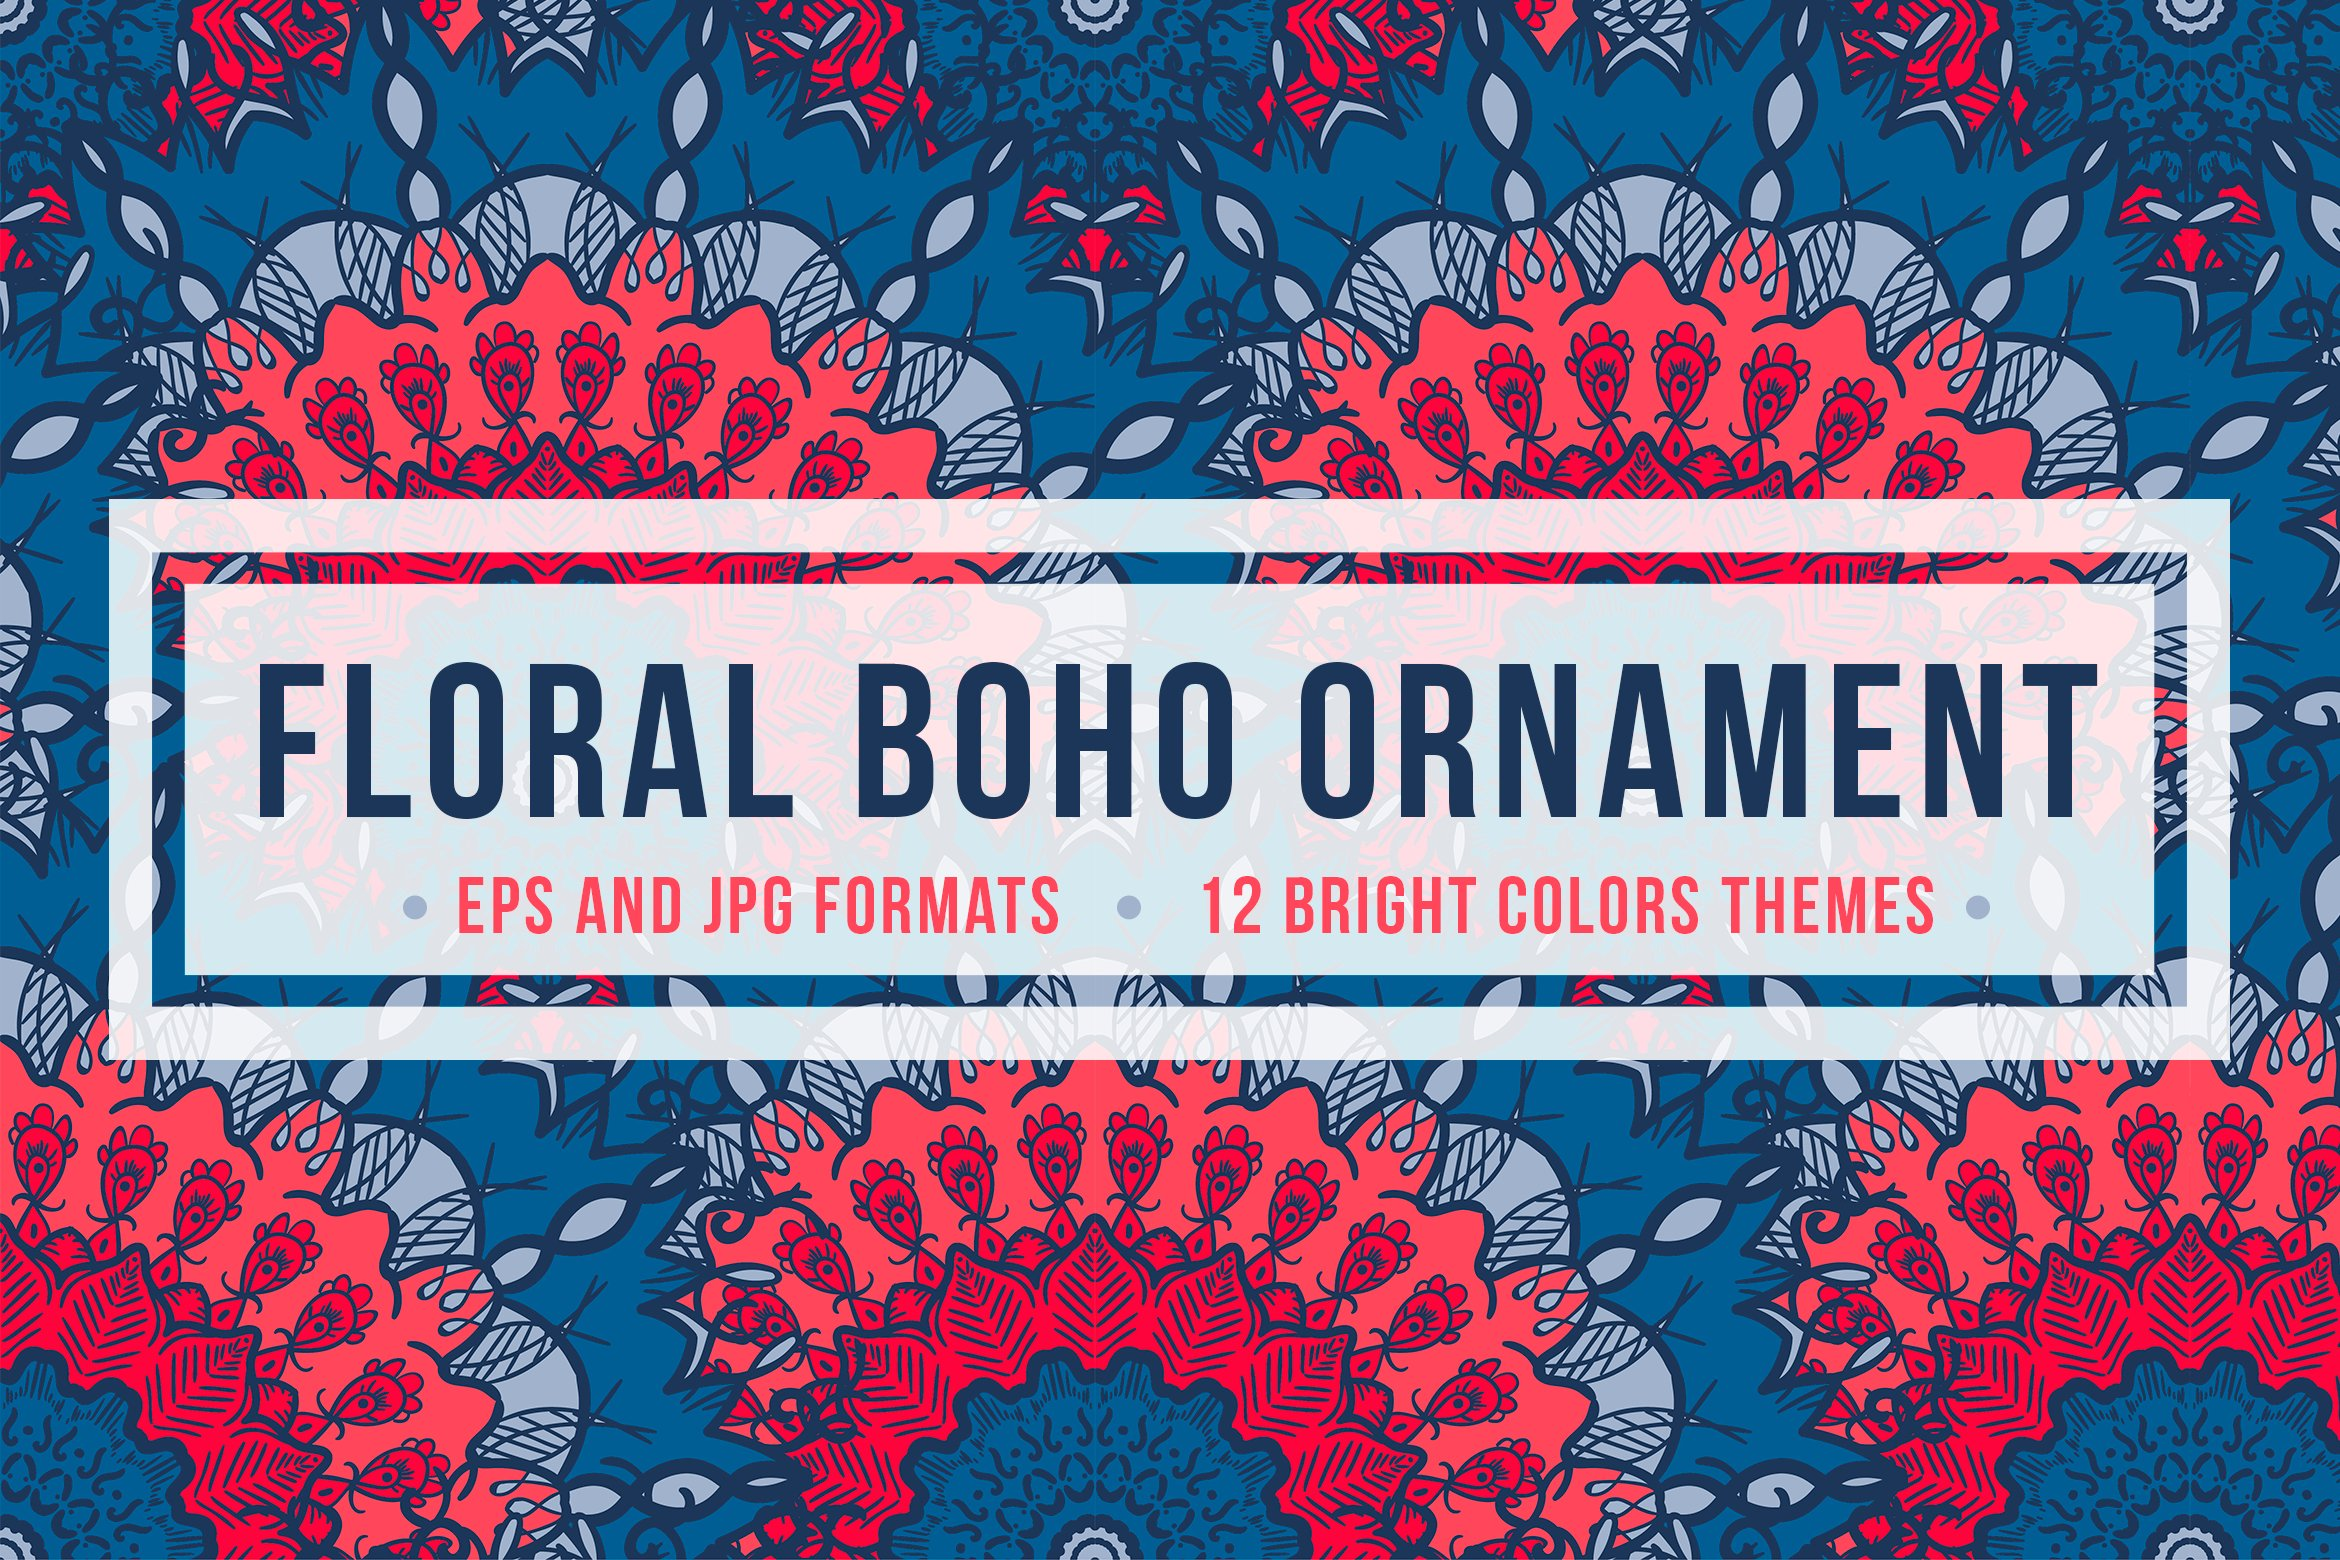 Download Free Floral Boho Ornament Graphic By Barsrsind Creative Fabrica for Cricut Explore, Silhouette and other cutting machines.